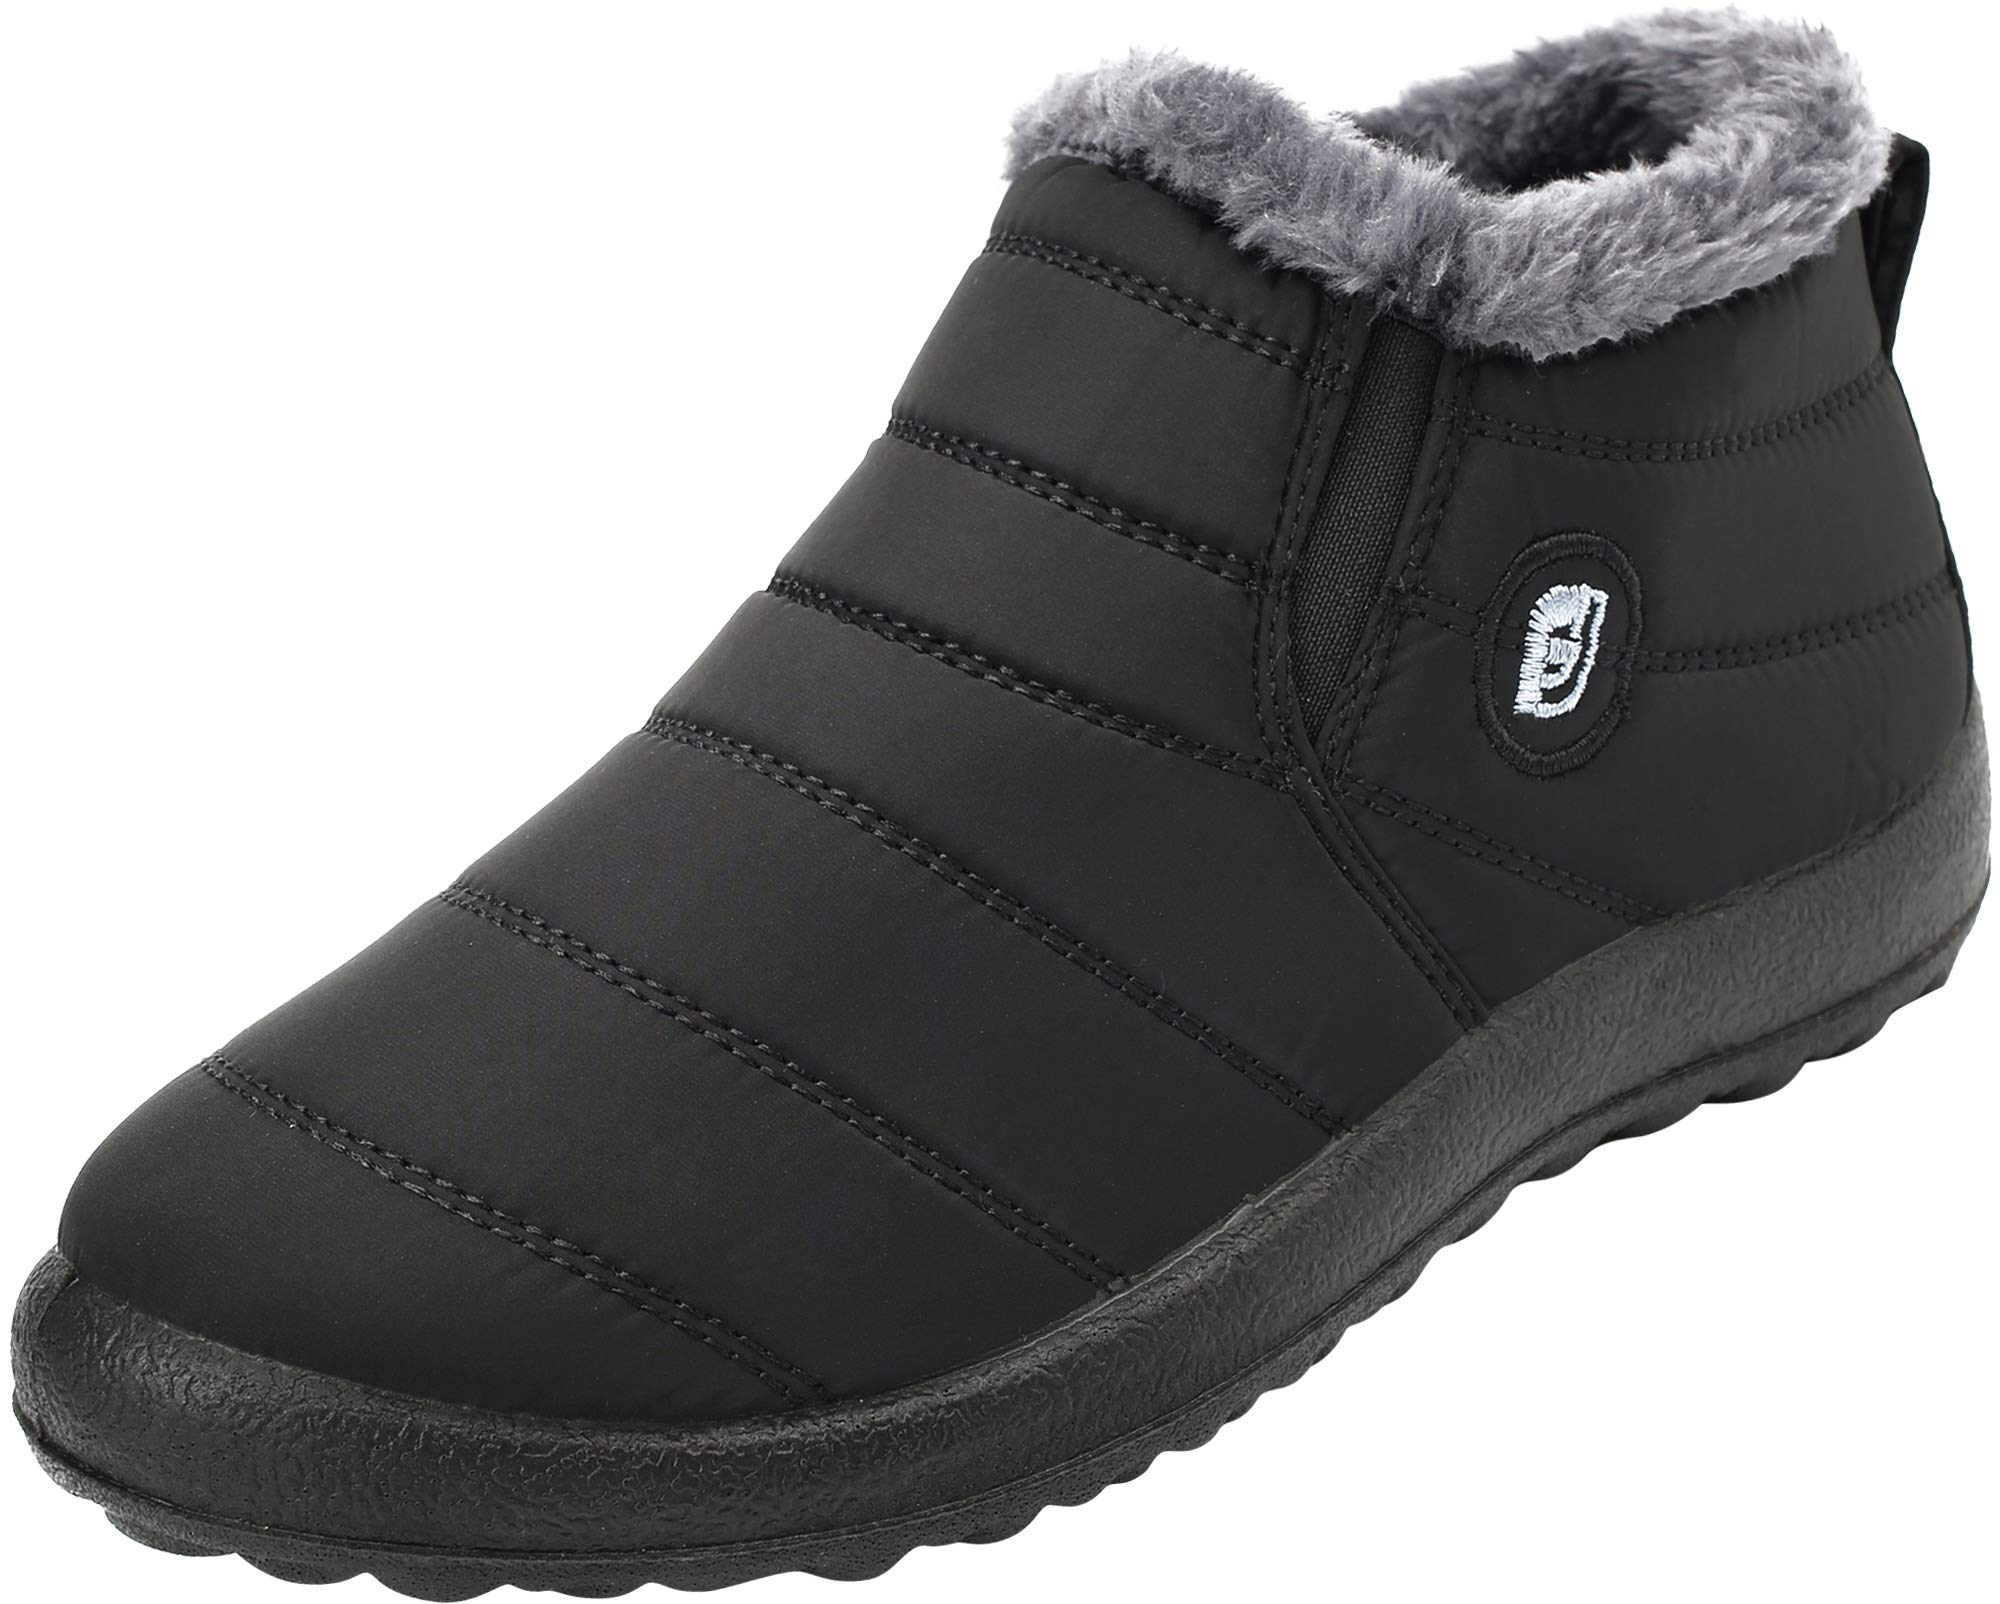 FEETCITY Snow Boots for Women, Unisex Winter Outdoor Slip On Ankle Snow Booties with Cotton Lined Black Women 7.5 B(M) US